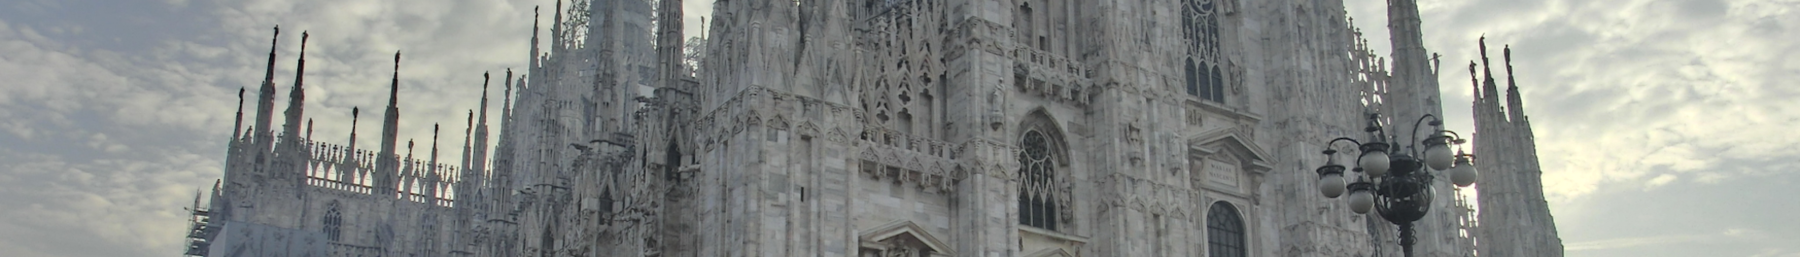 The Duomo (cathedral), perhaps the most recognizable landmark of Milan